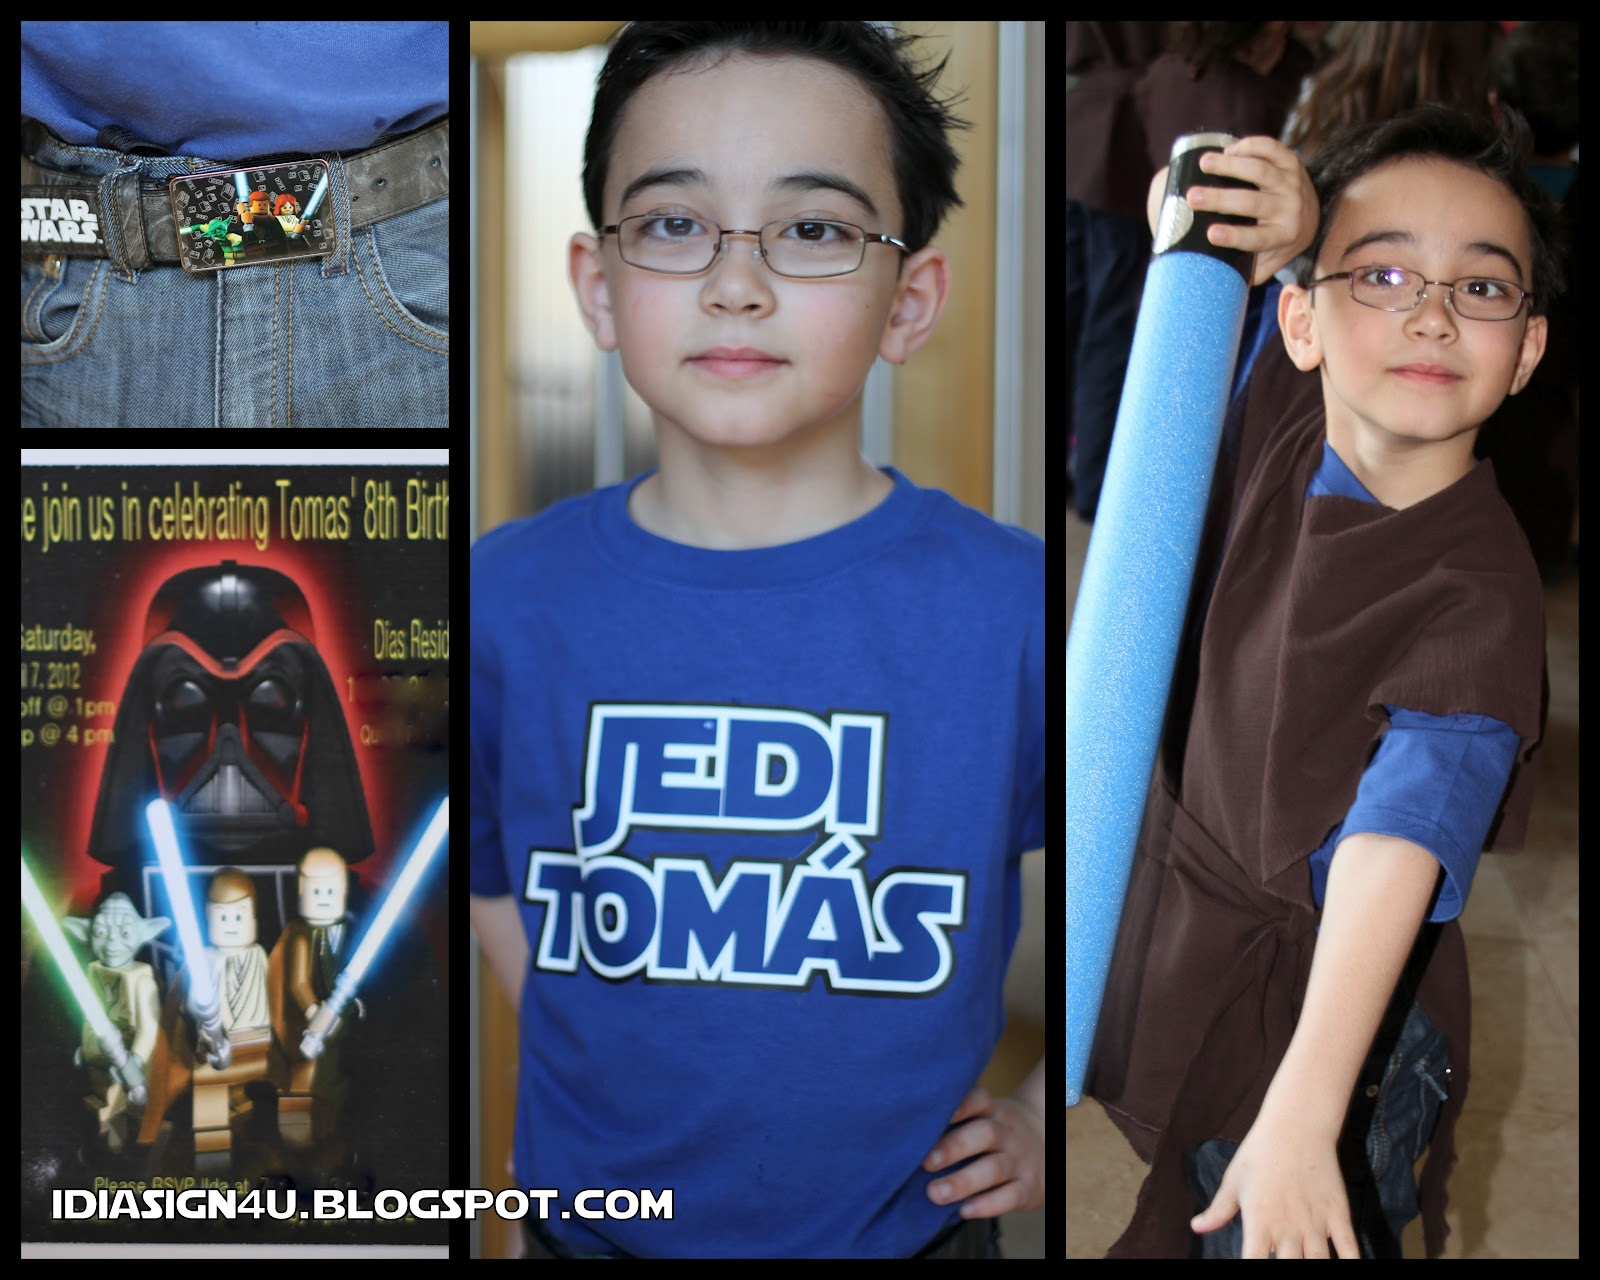 Design your own t-shirt birthday party - I Made Him His Own Jedi Shirt Click Here For How To Make Your Own Personalized Shirt All Of His Little Friends Got A Jedi Robe As Well Super Easy No Sew